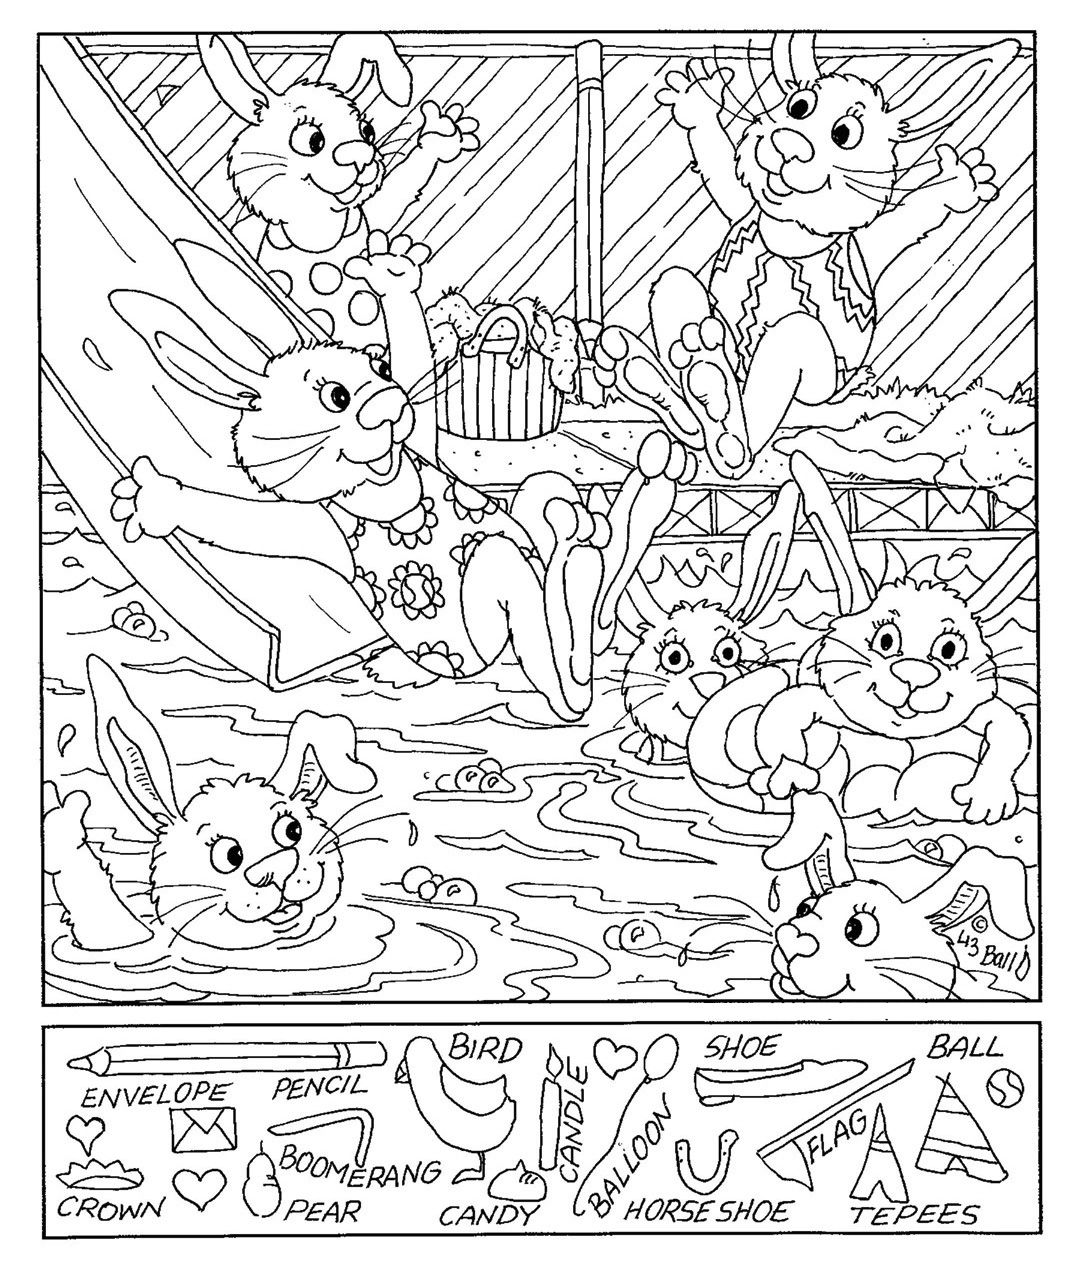 bunny hidden picture coloring sheets | Hidden pictures | Pinterest ...